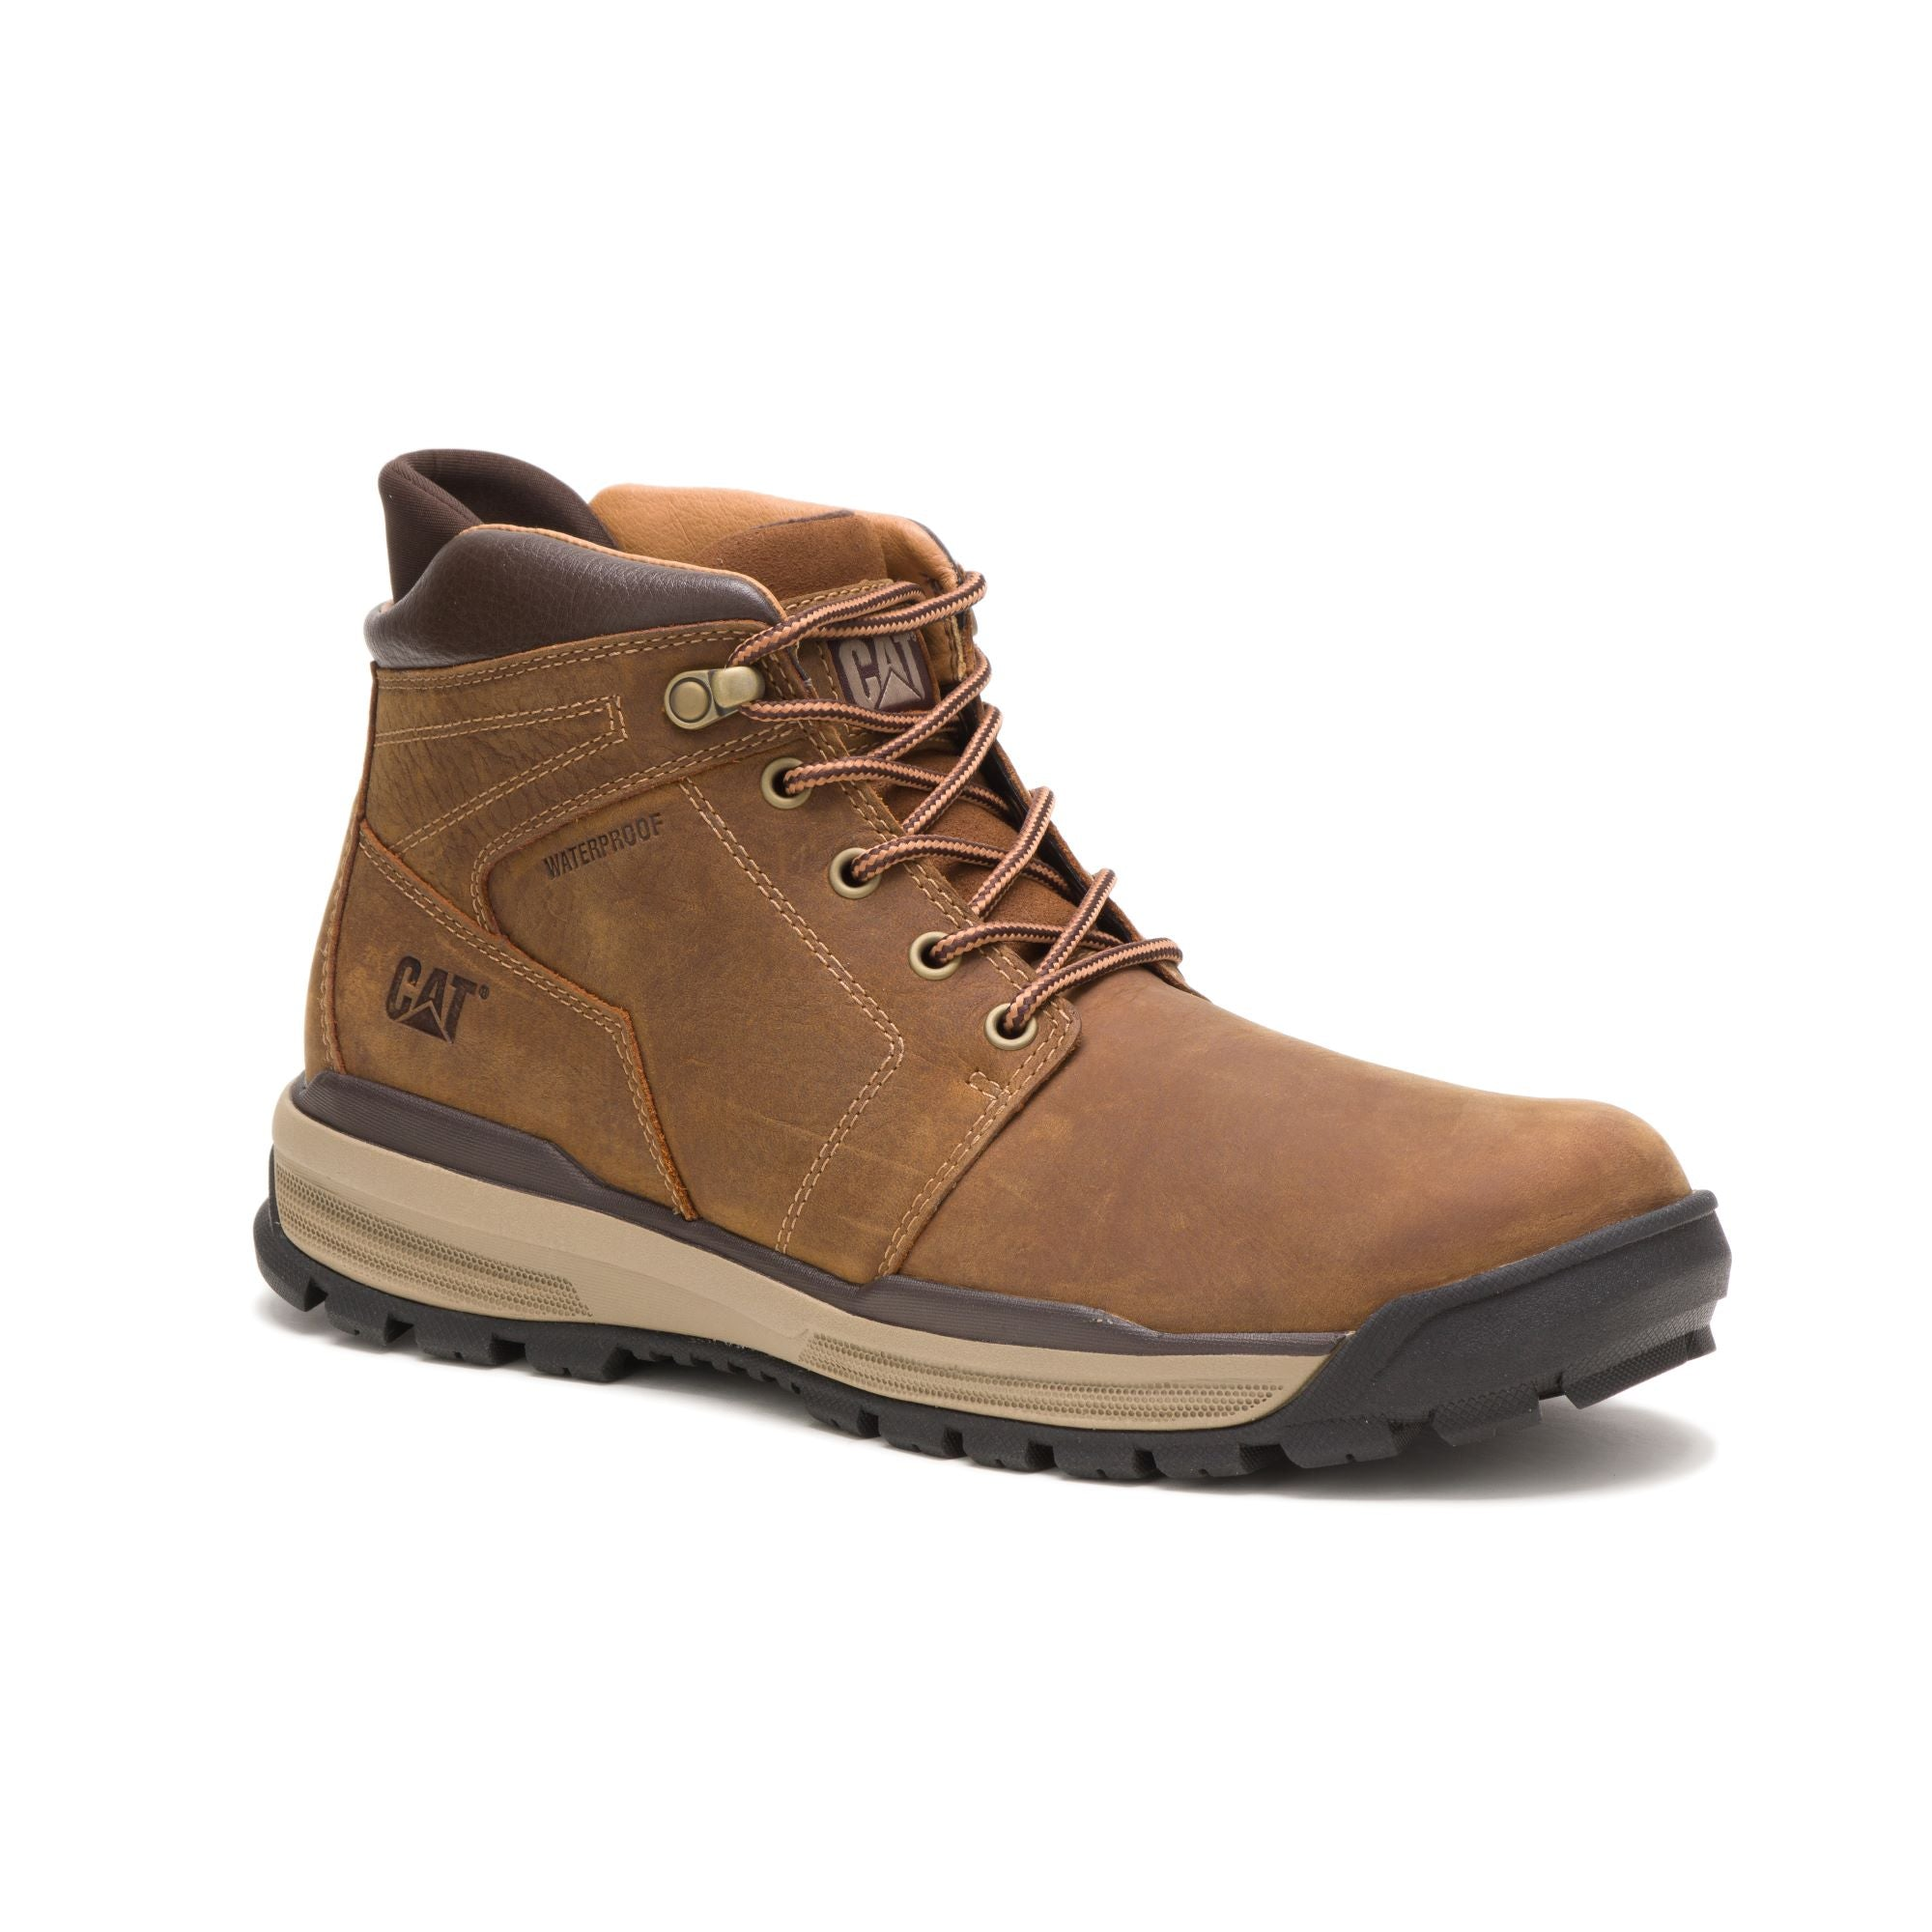 'Caterpillar' Men's Cohesion Ice Insulated WP - Brown